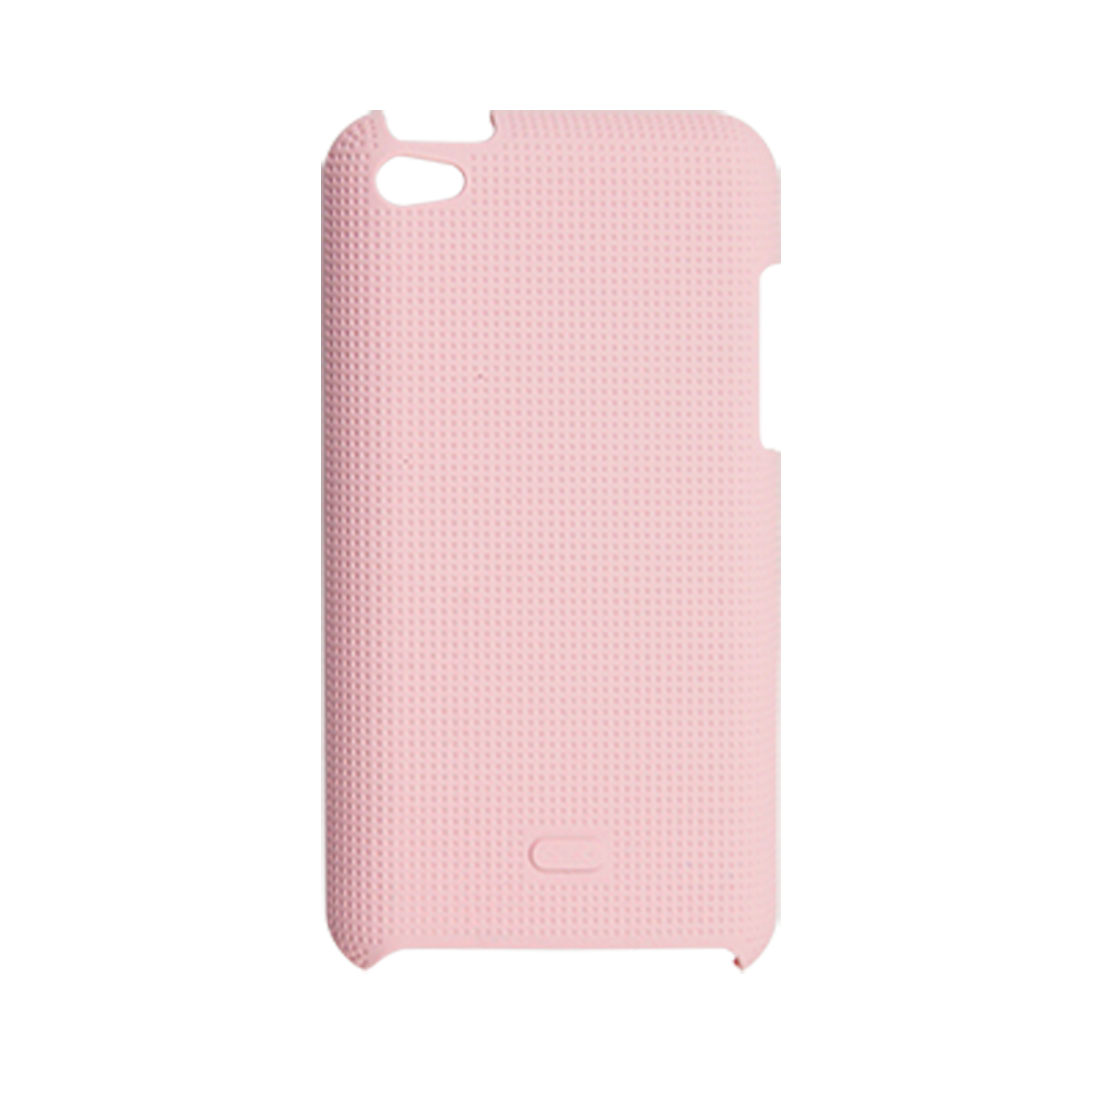 Pink Nonslip Back Case Protector for iPod Touch 4G